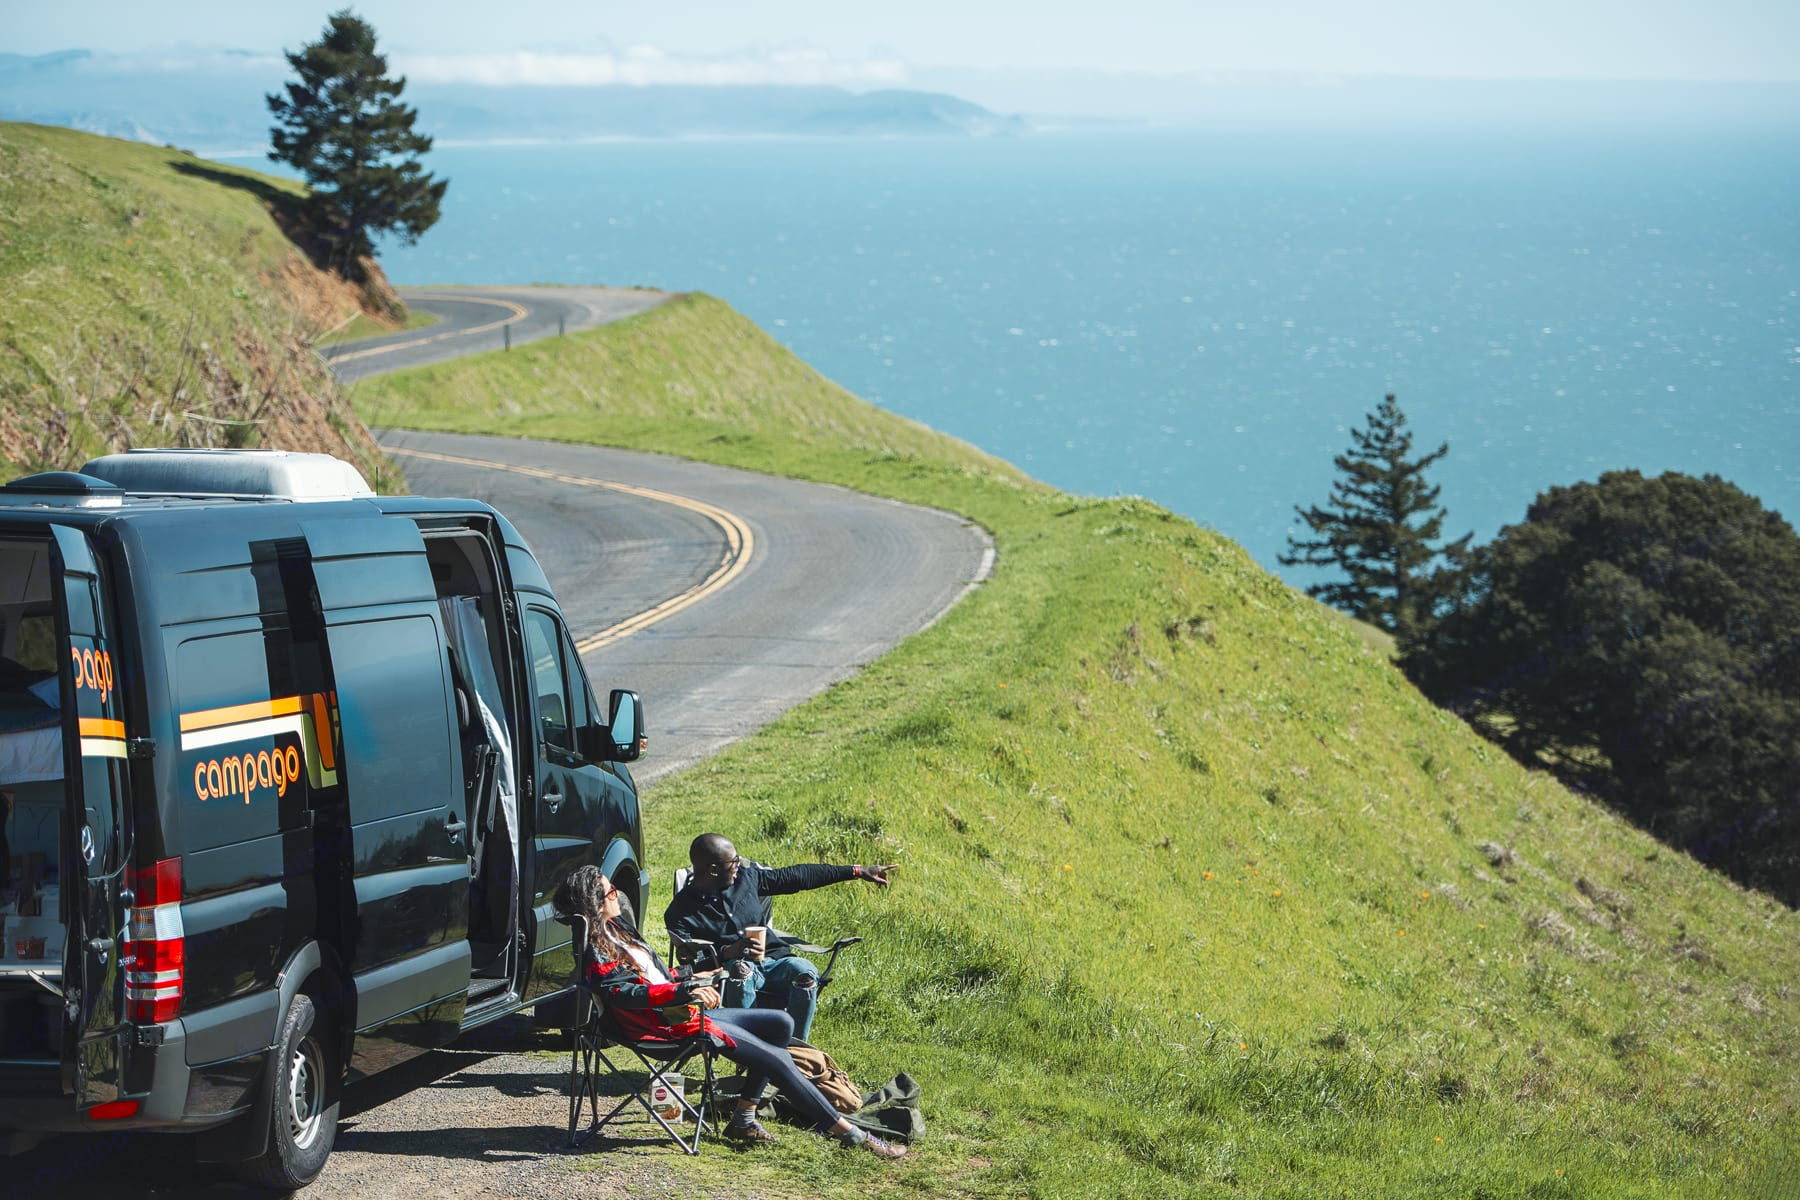 When everywhere is comfortable, where will you CampaGO?. Mercedes-Benz Sprinter 2013